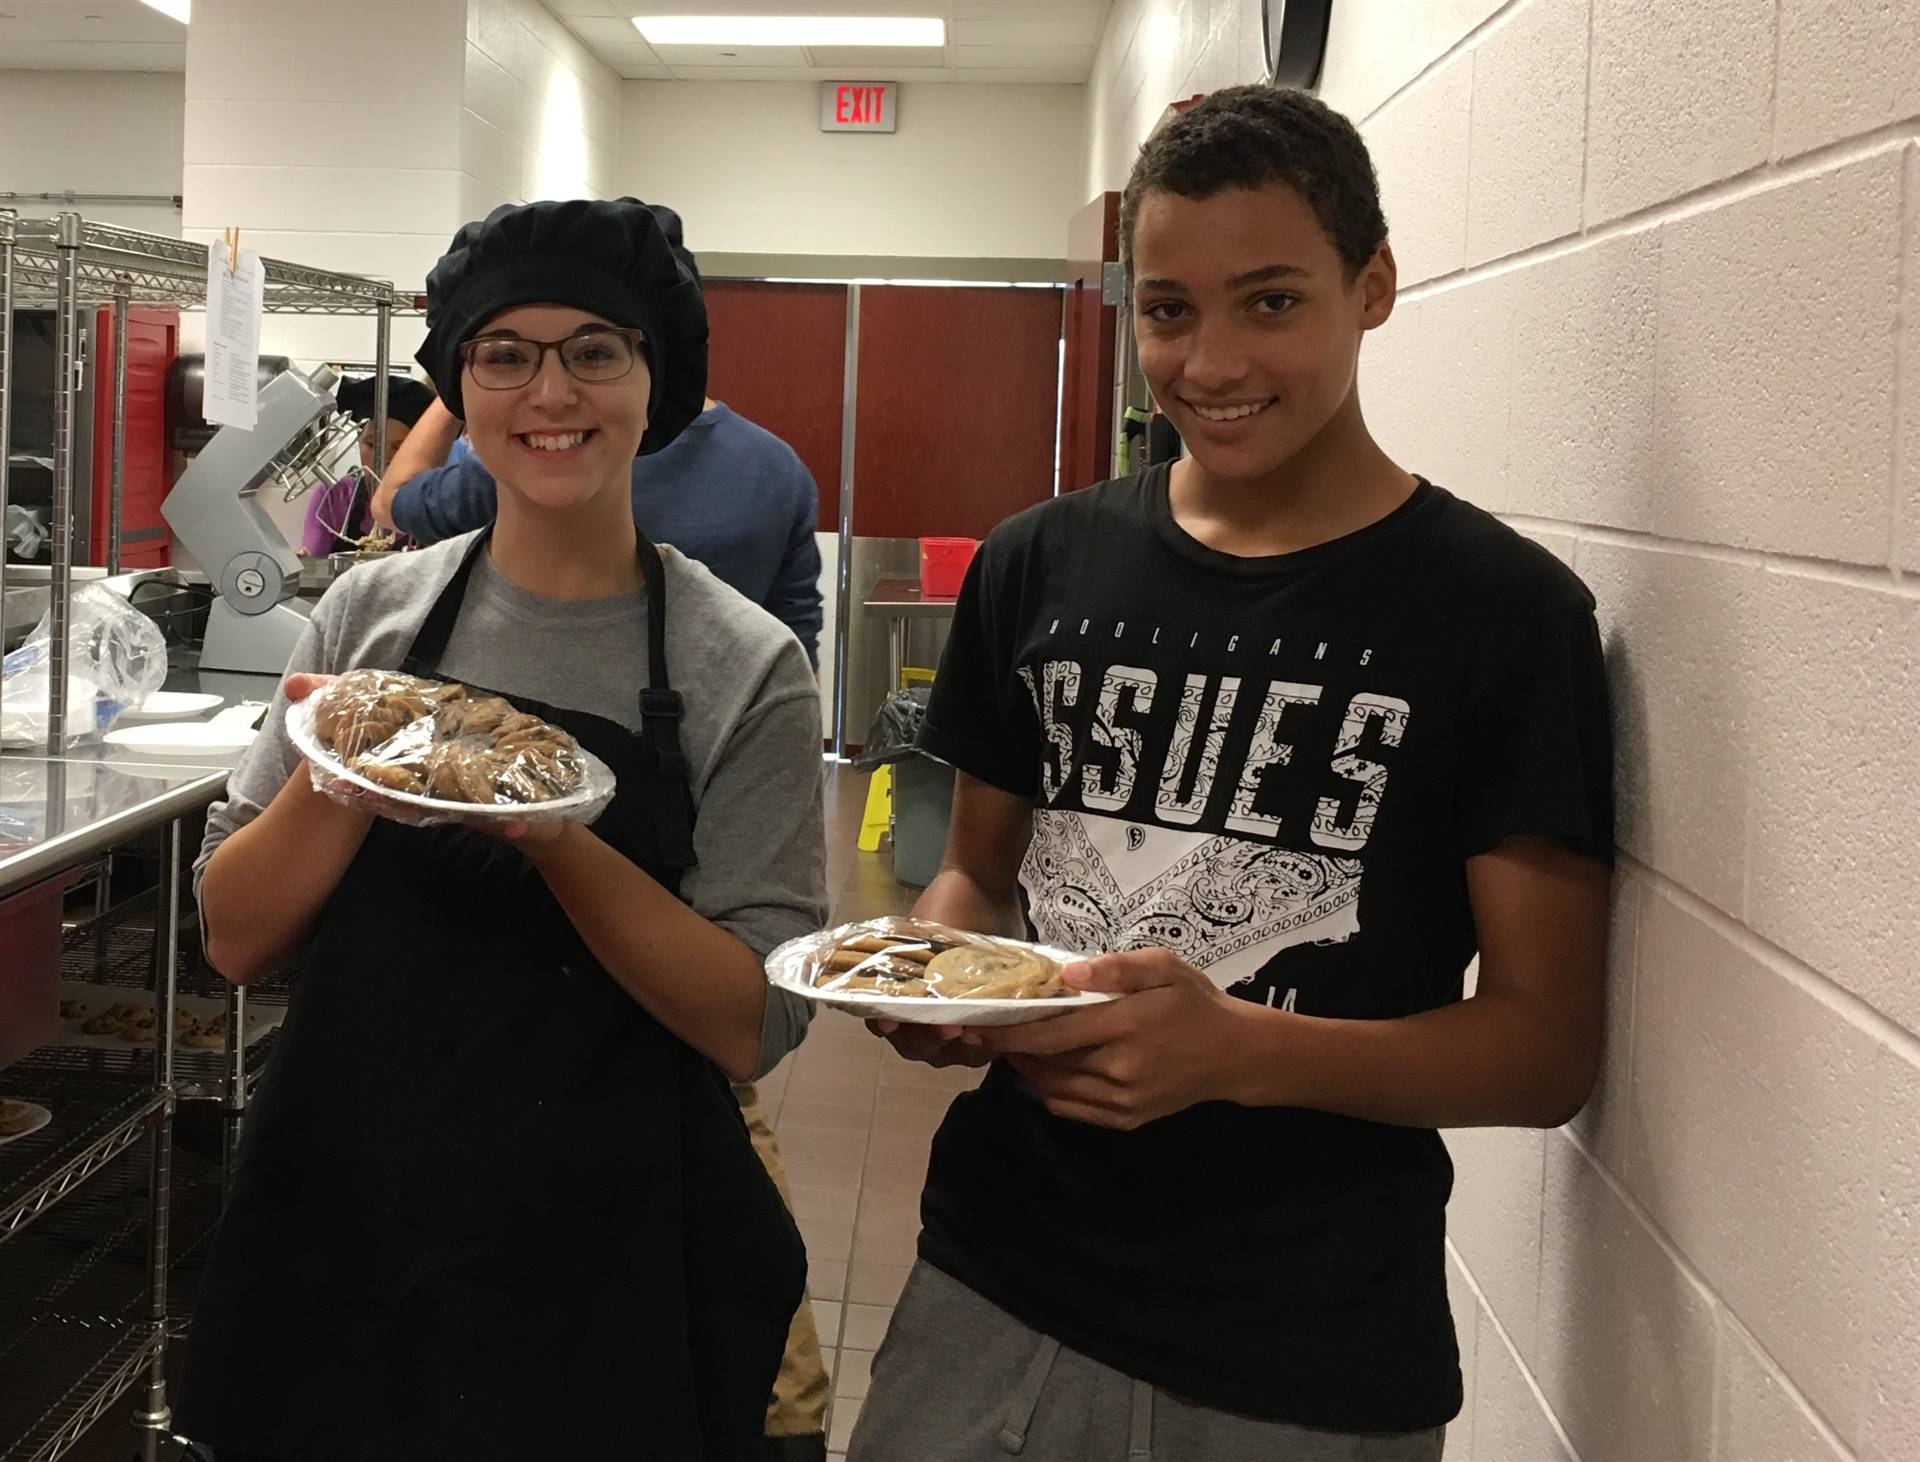 Female and male Culinary Arts students smiling with plates of food